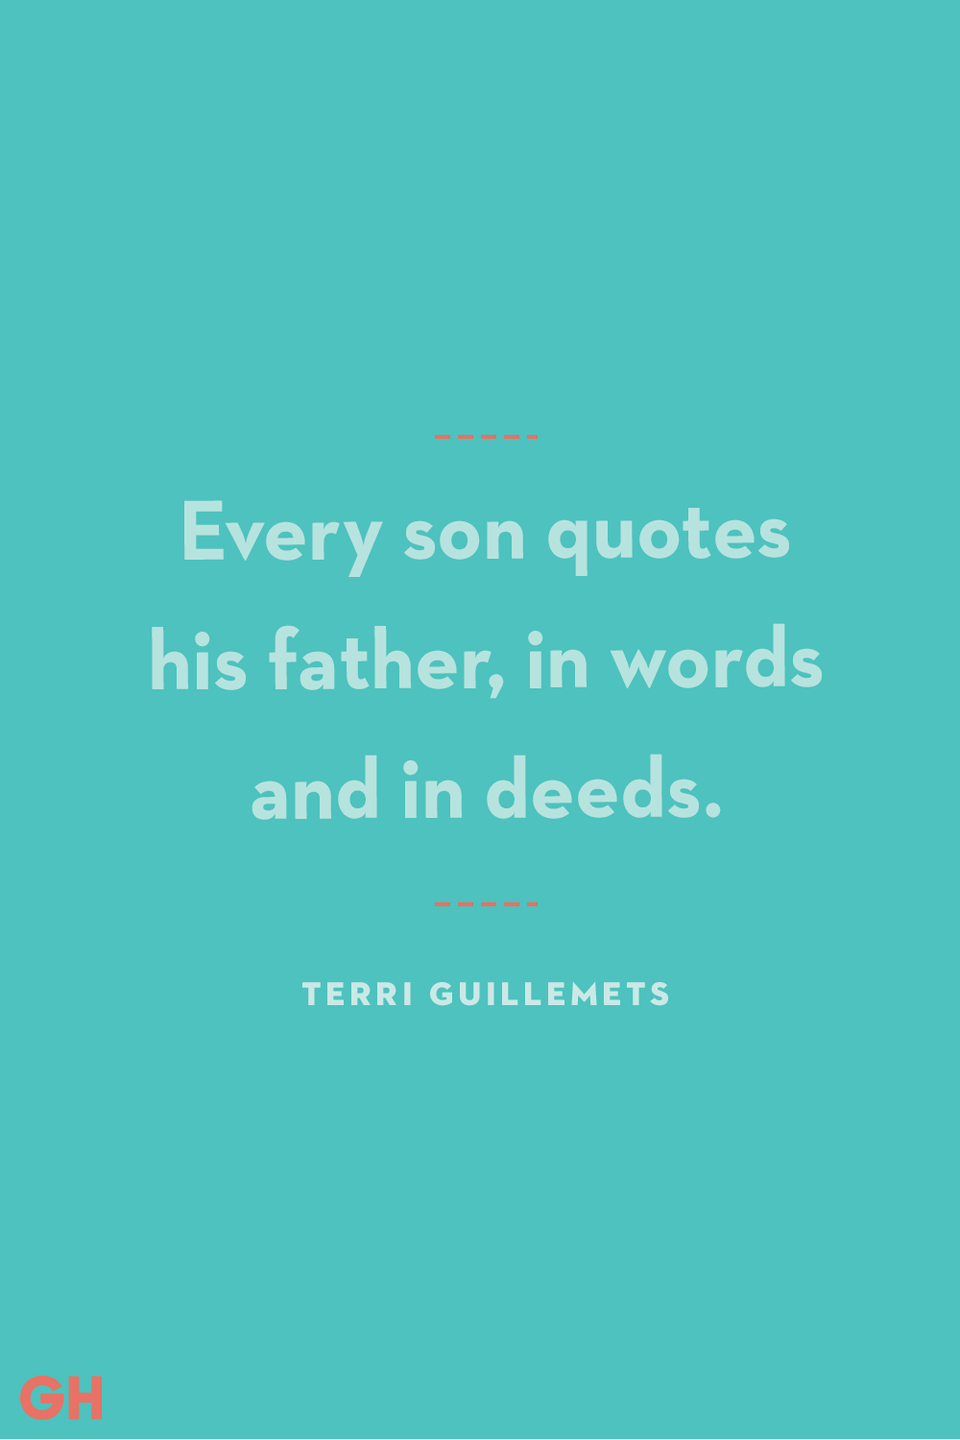 <p>Every son quotes his father, in words and in deeds.</p>